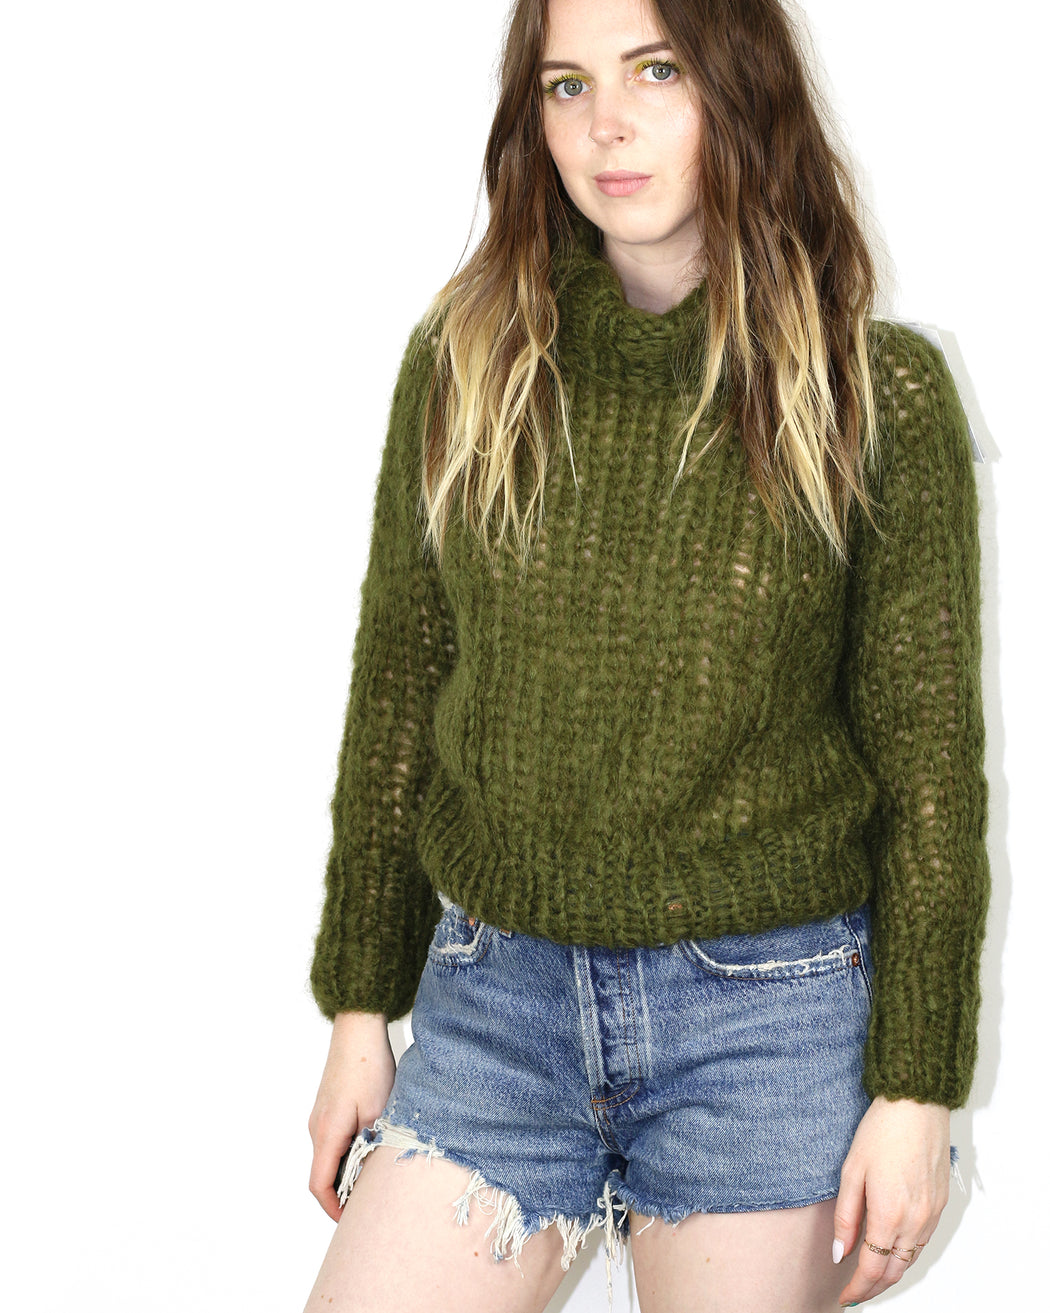 Maiami:Short Turtleneck Sweater,extra-small | SOLD OUT / moss green